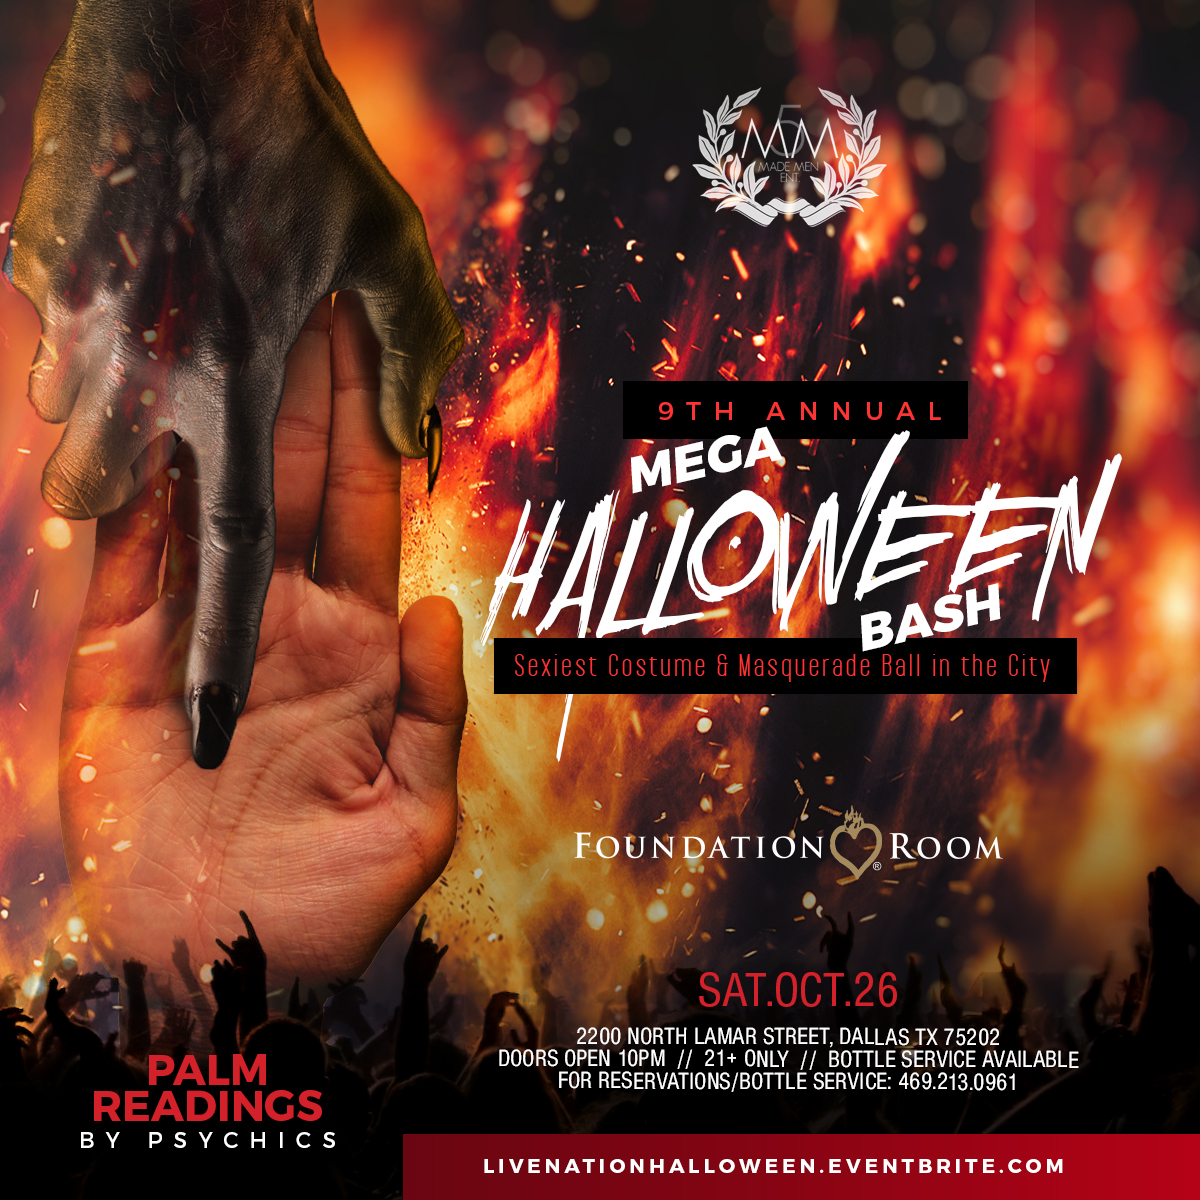 MegaHalloweenBash_Mademen